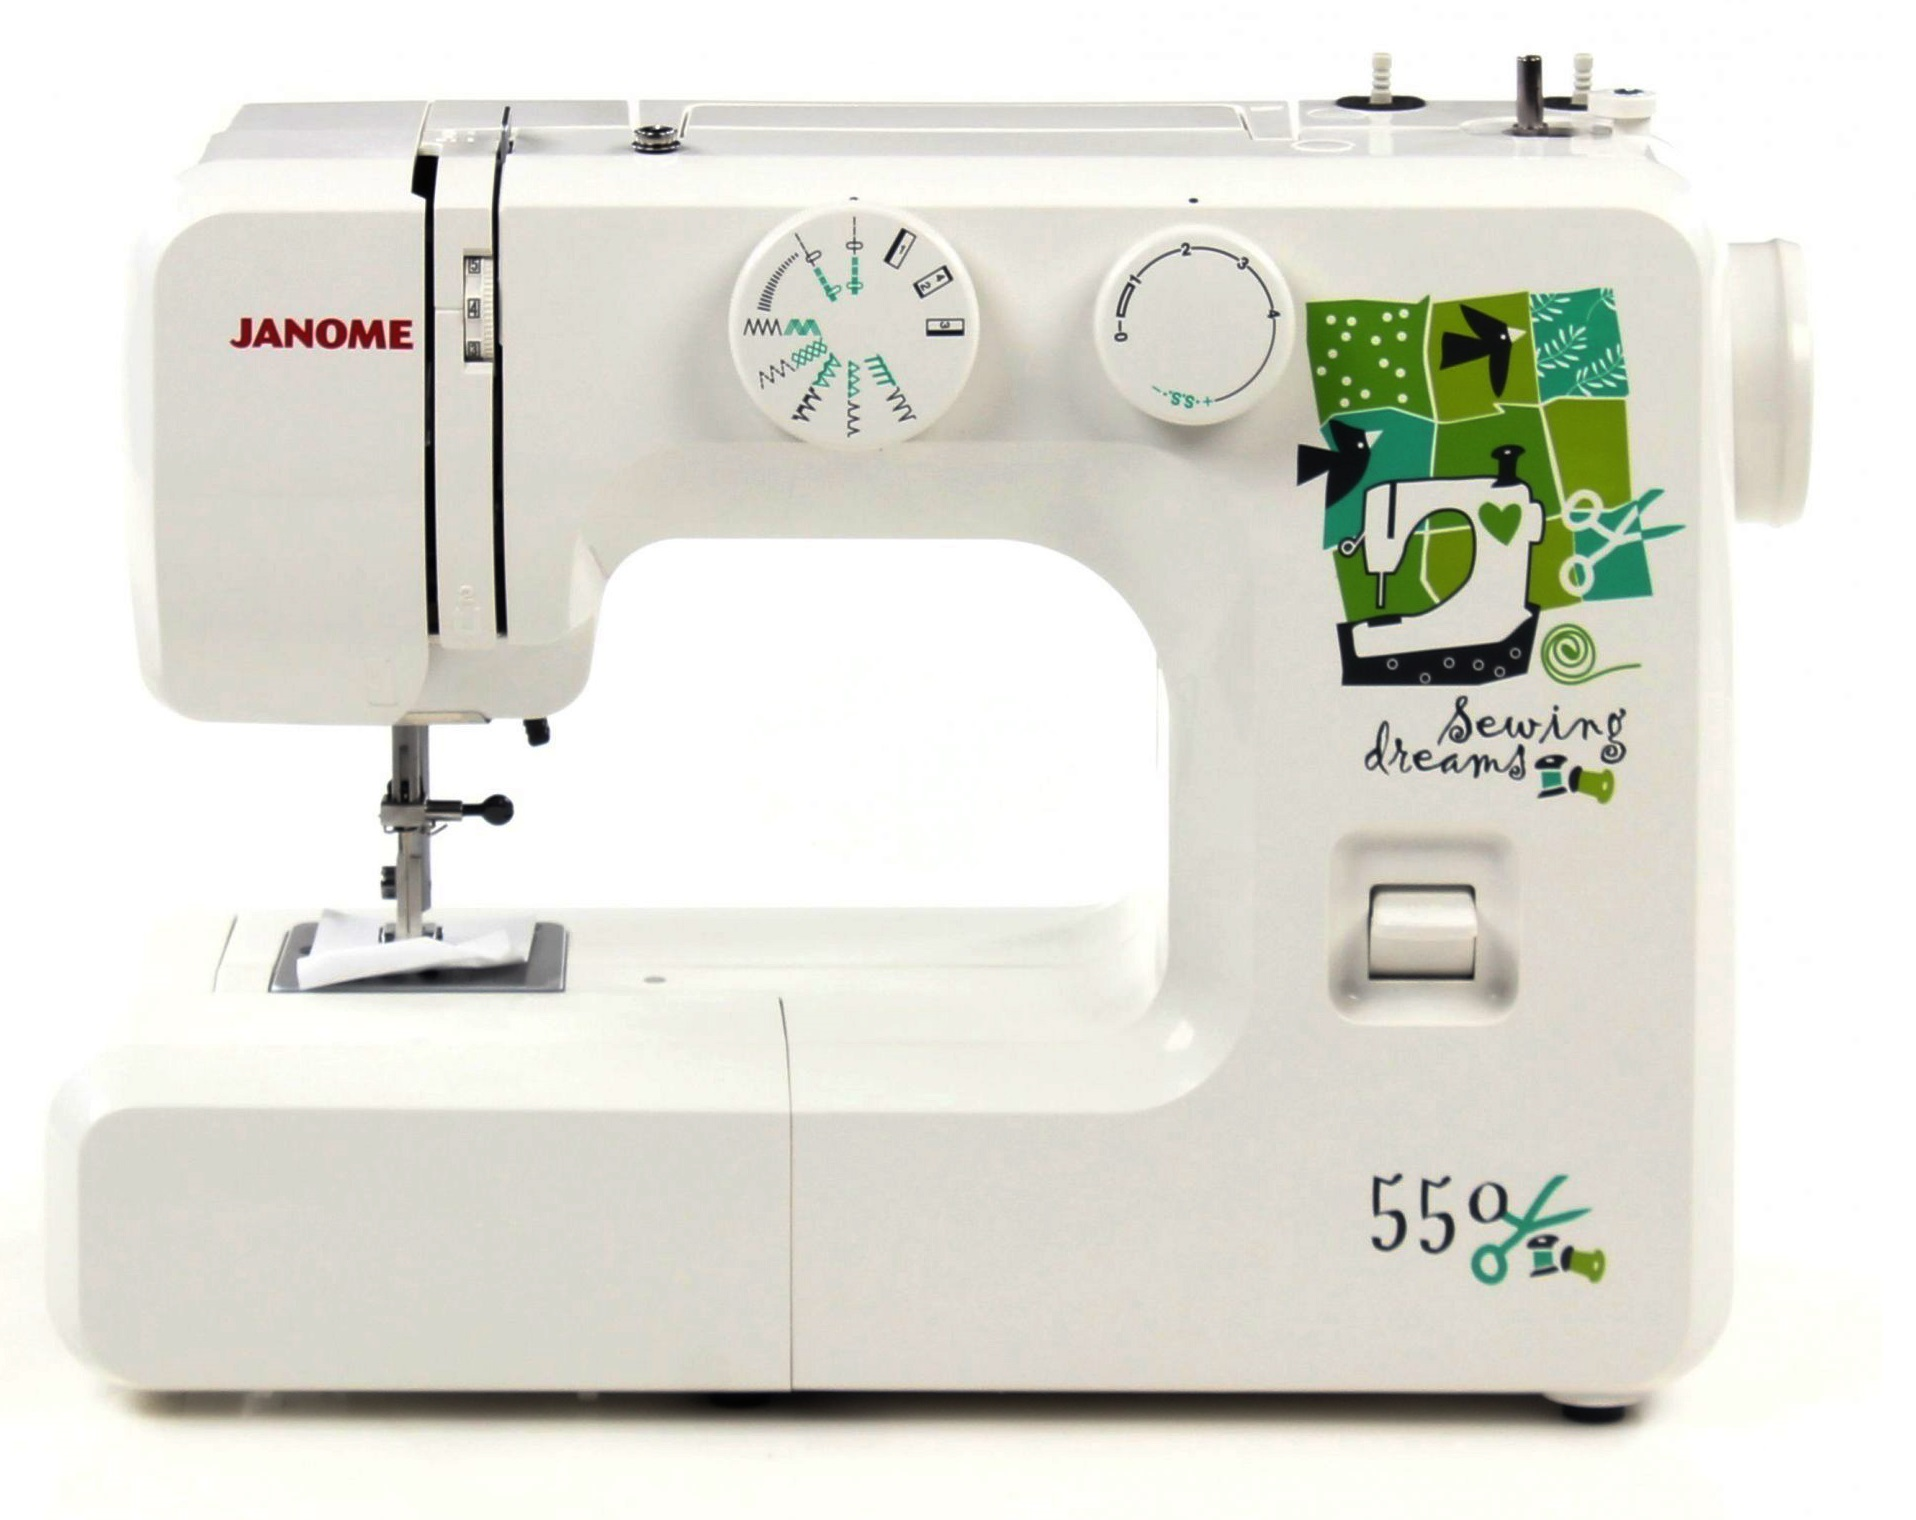 Janome 550 Sewing Dreams